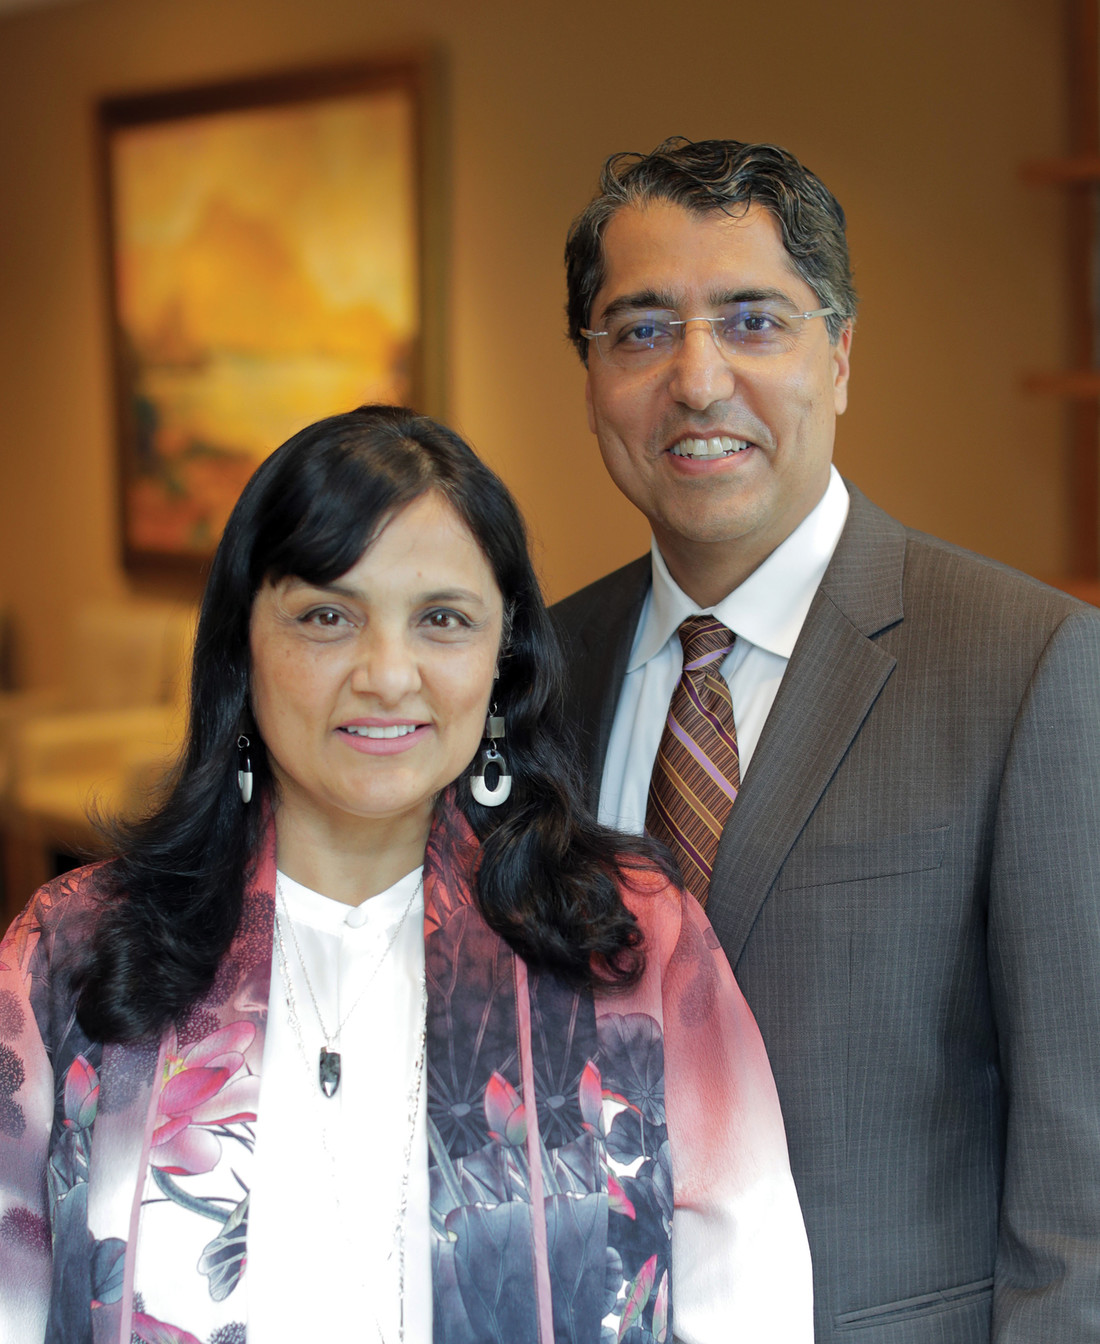 Philanthropic Professionals: Two Physicians Dedicated to Giving Back